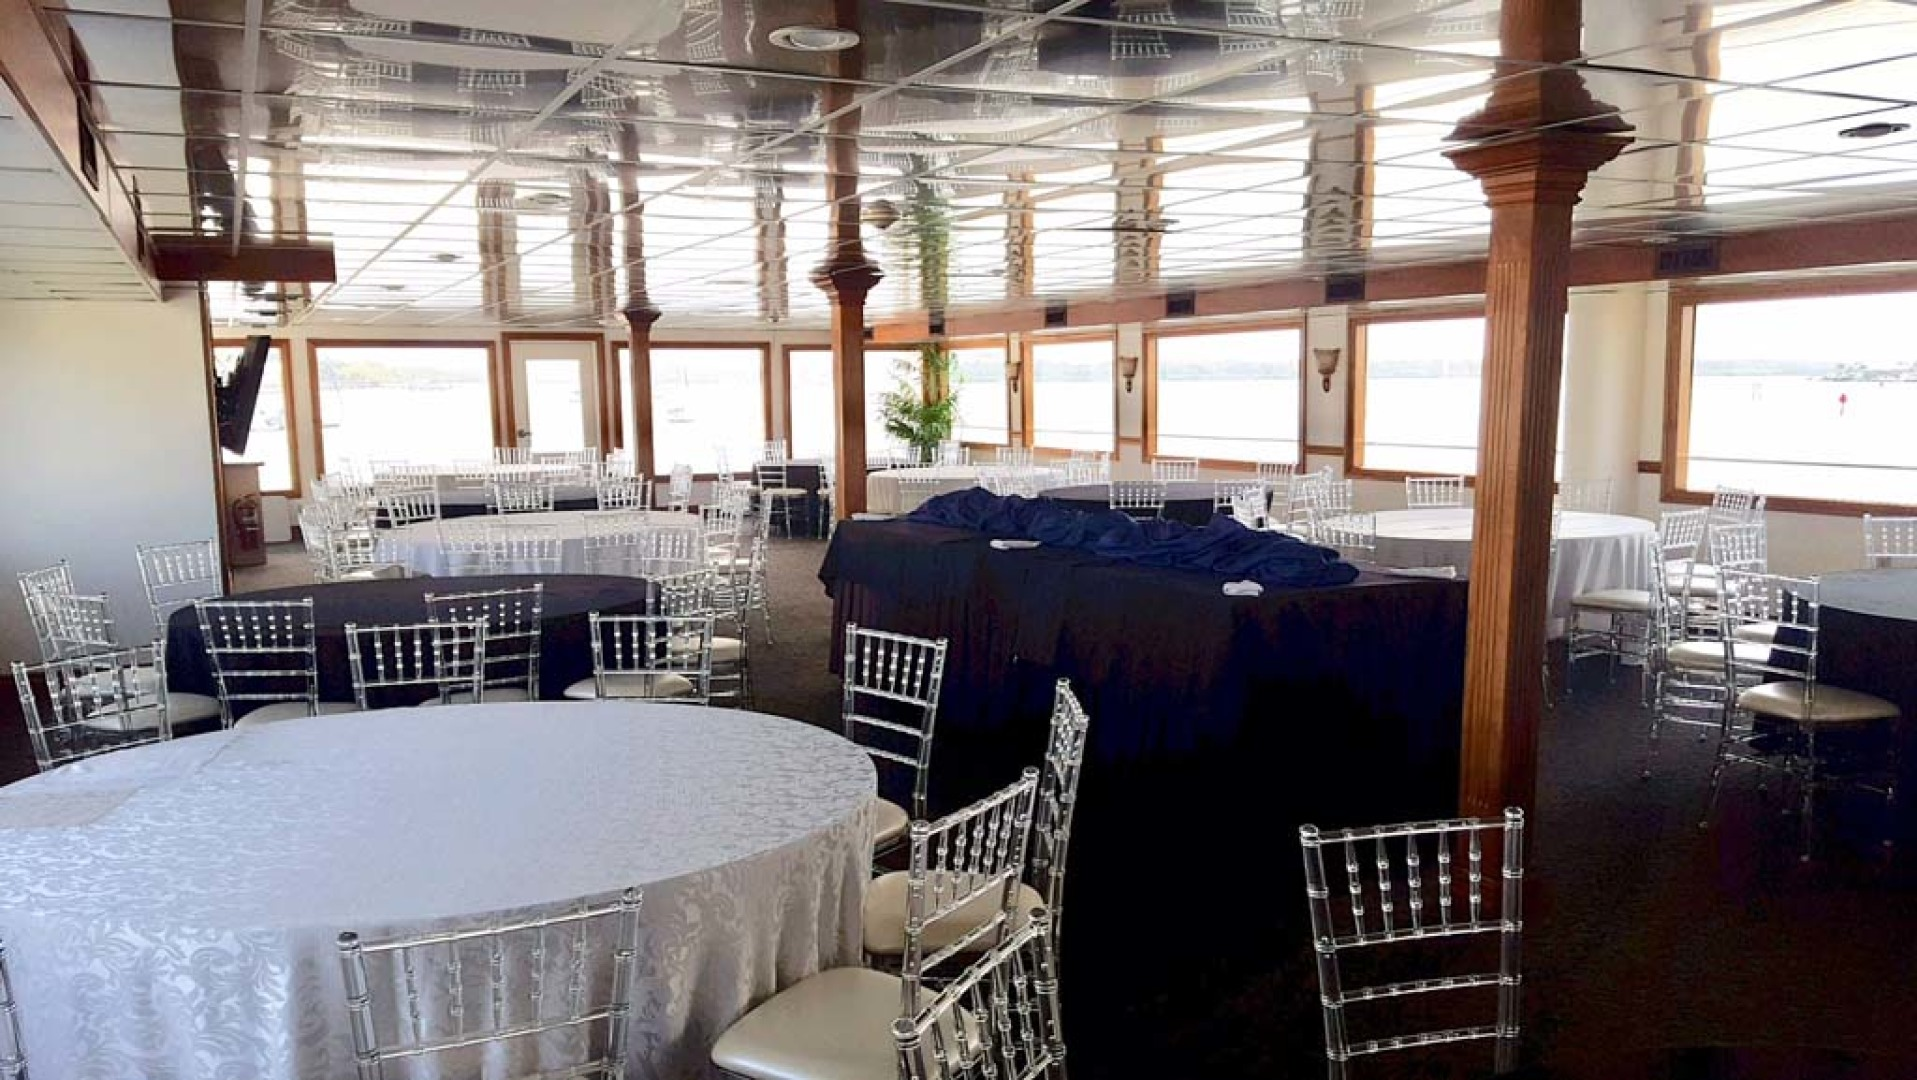 Custom-Keith Marine Dinner Boat 2006-Sir Winston Tampa-Florida-United States-Deck 2 The Crystal Room-1115550 | Thumbnail